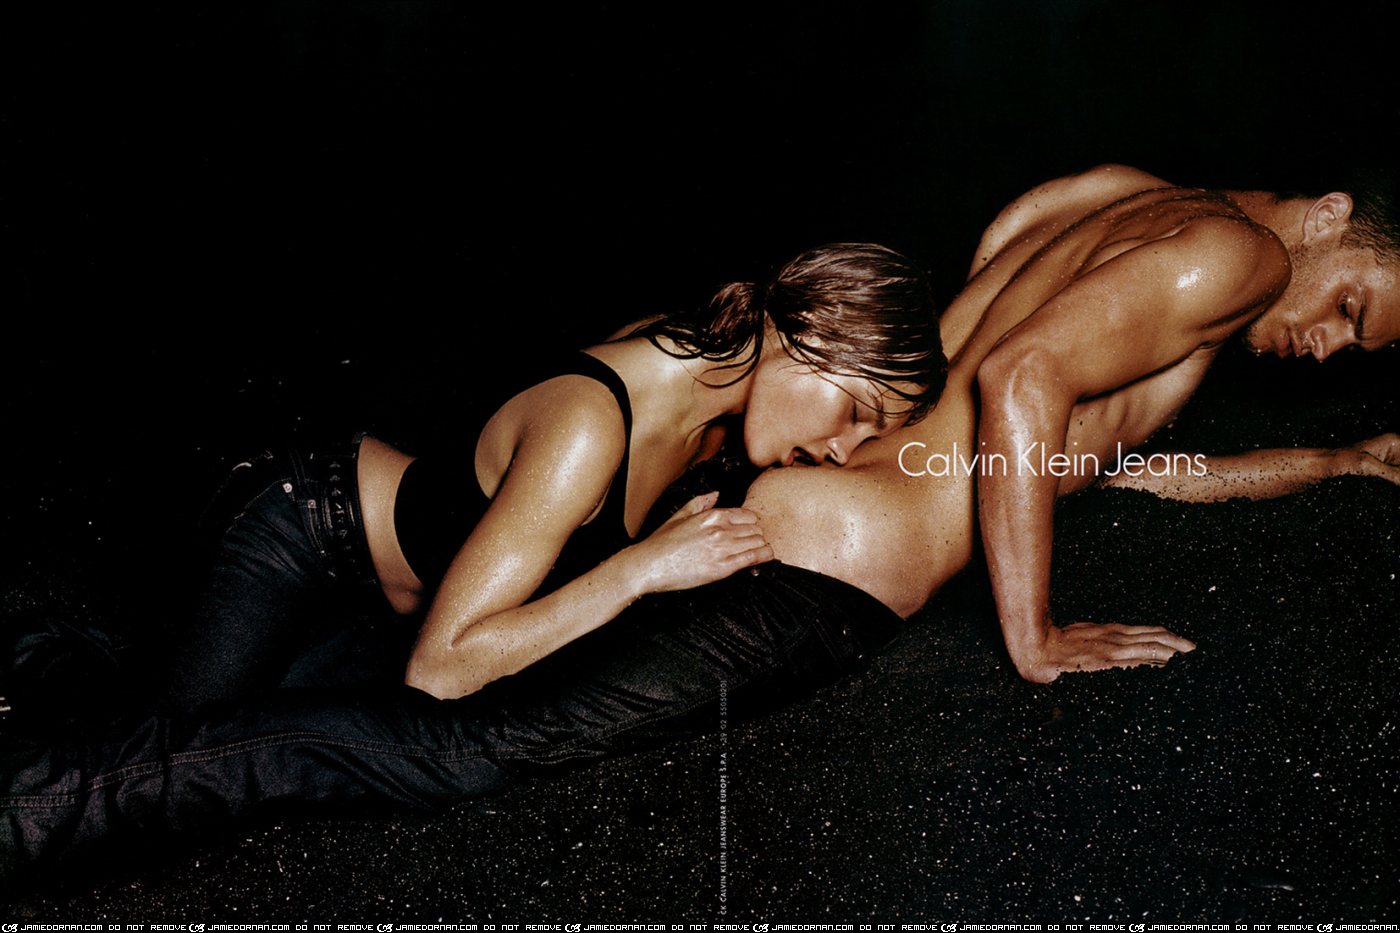 Calvin Klein Jeans Fall/Winter 2004 (HQ)